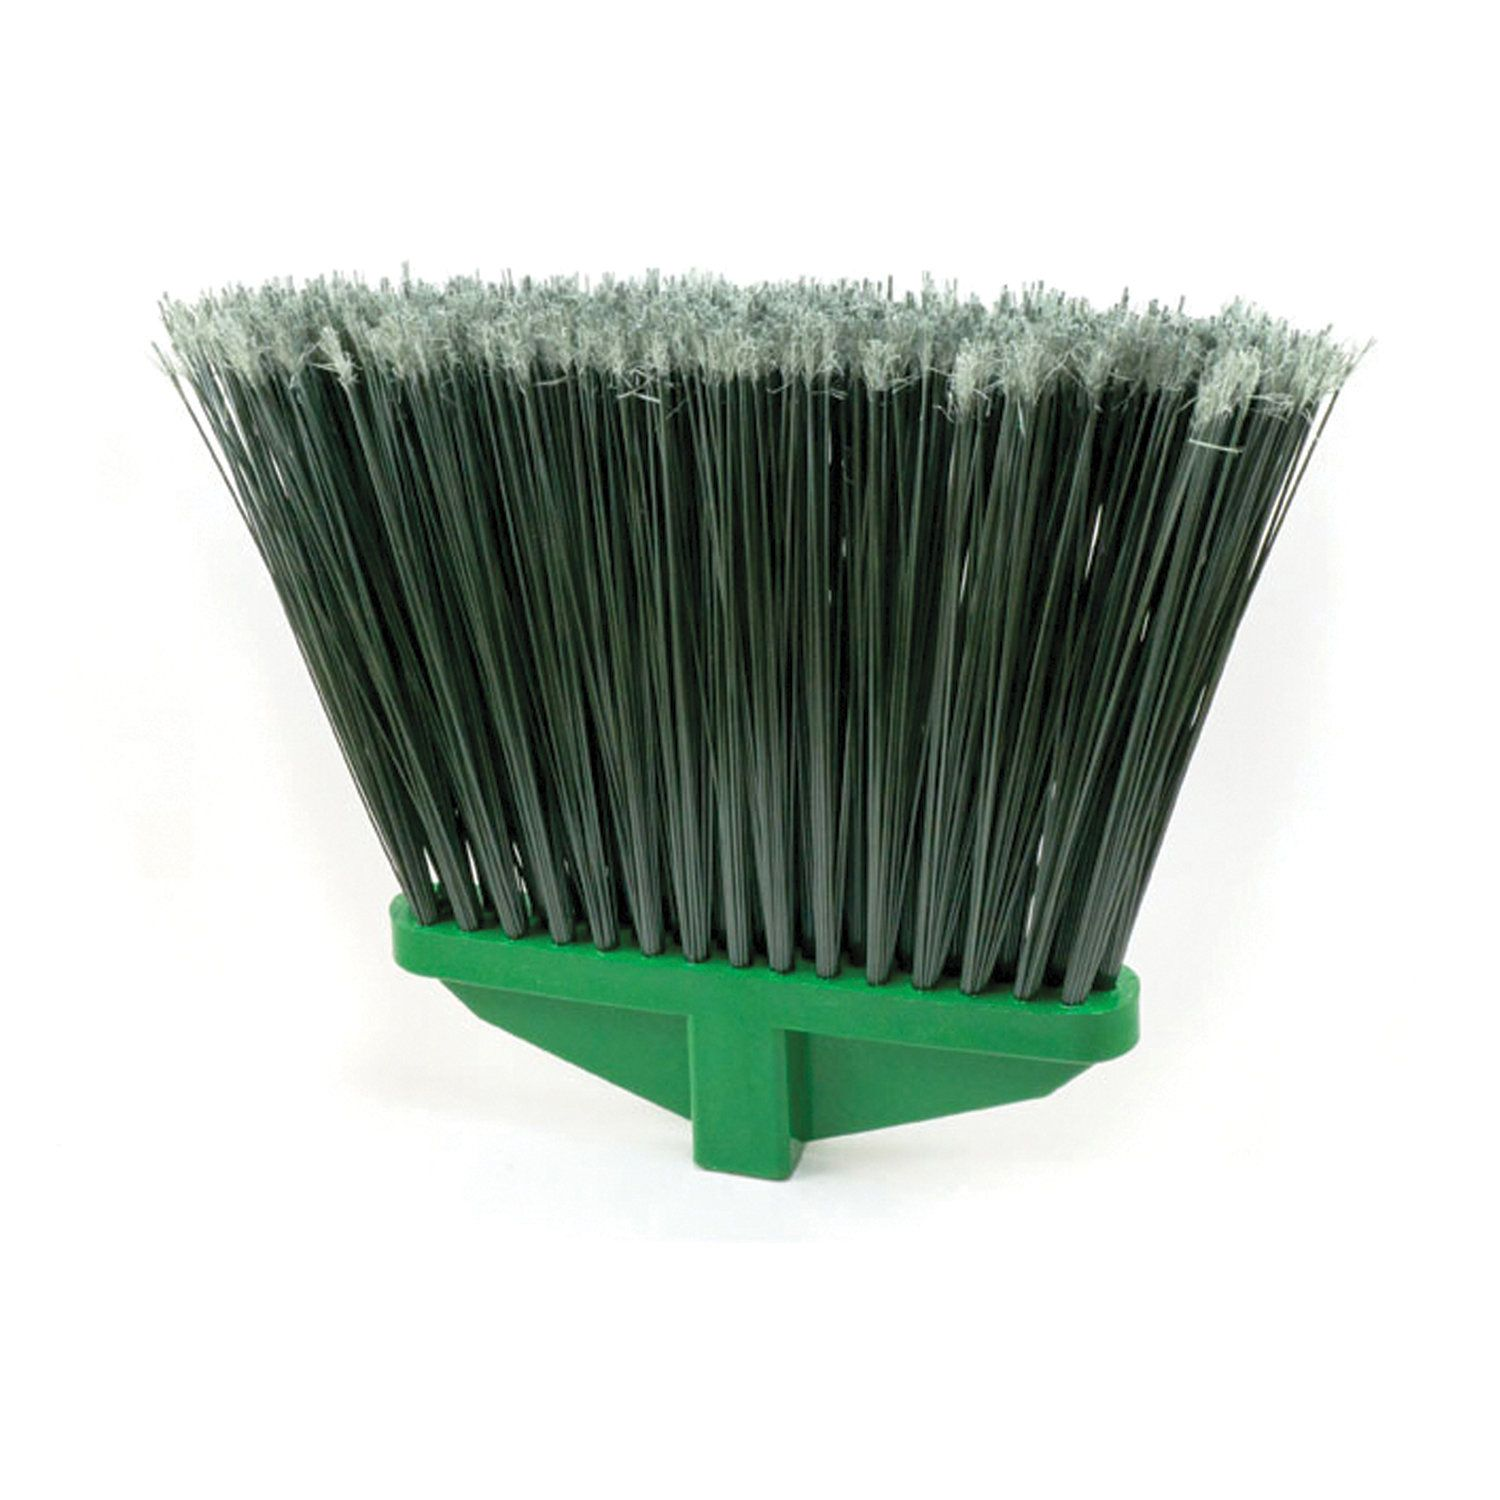 """LIMA / Broom EXPERT synthetic flat """"GARDENA LUX"""", without handle, euro-thread, plastic"""